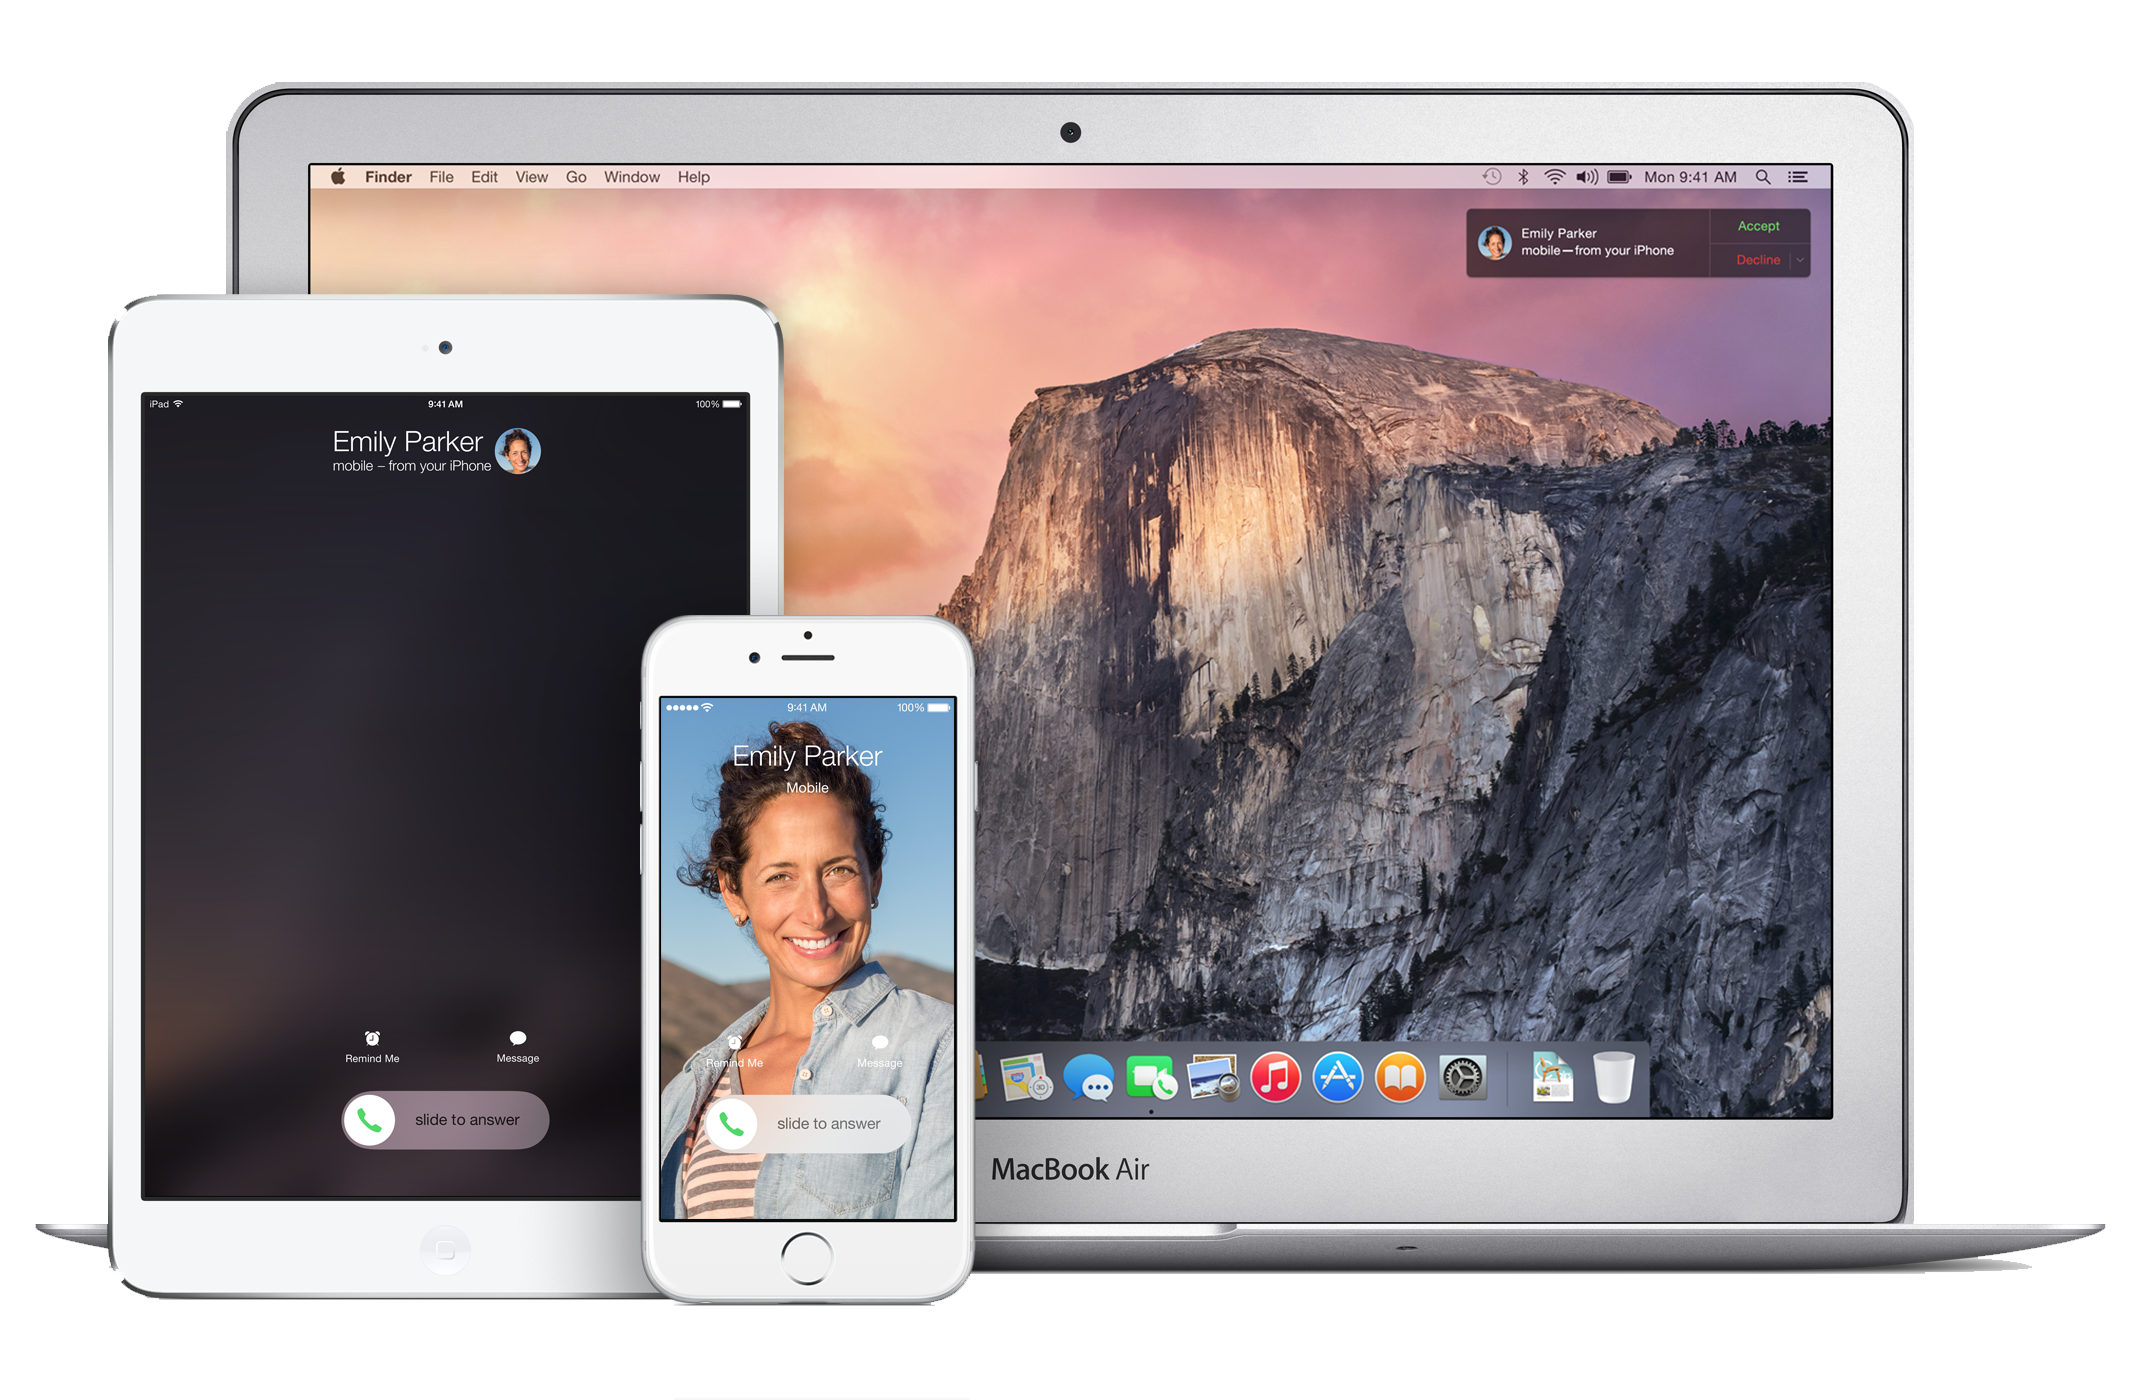 WITH IOS 8 AND YOSEMITE YOU CAN MAKE AND RECEIVE PHONE CALLS ON ALL DEVICES WITH YOUR APPLE ID